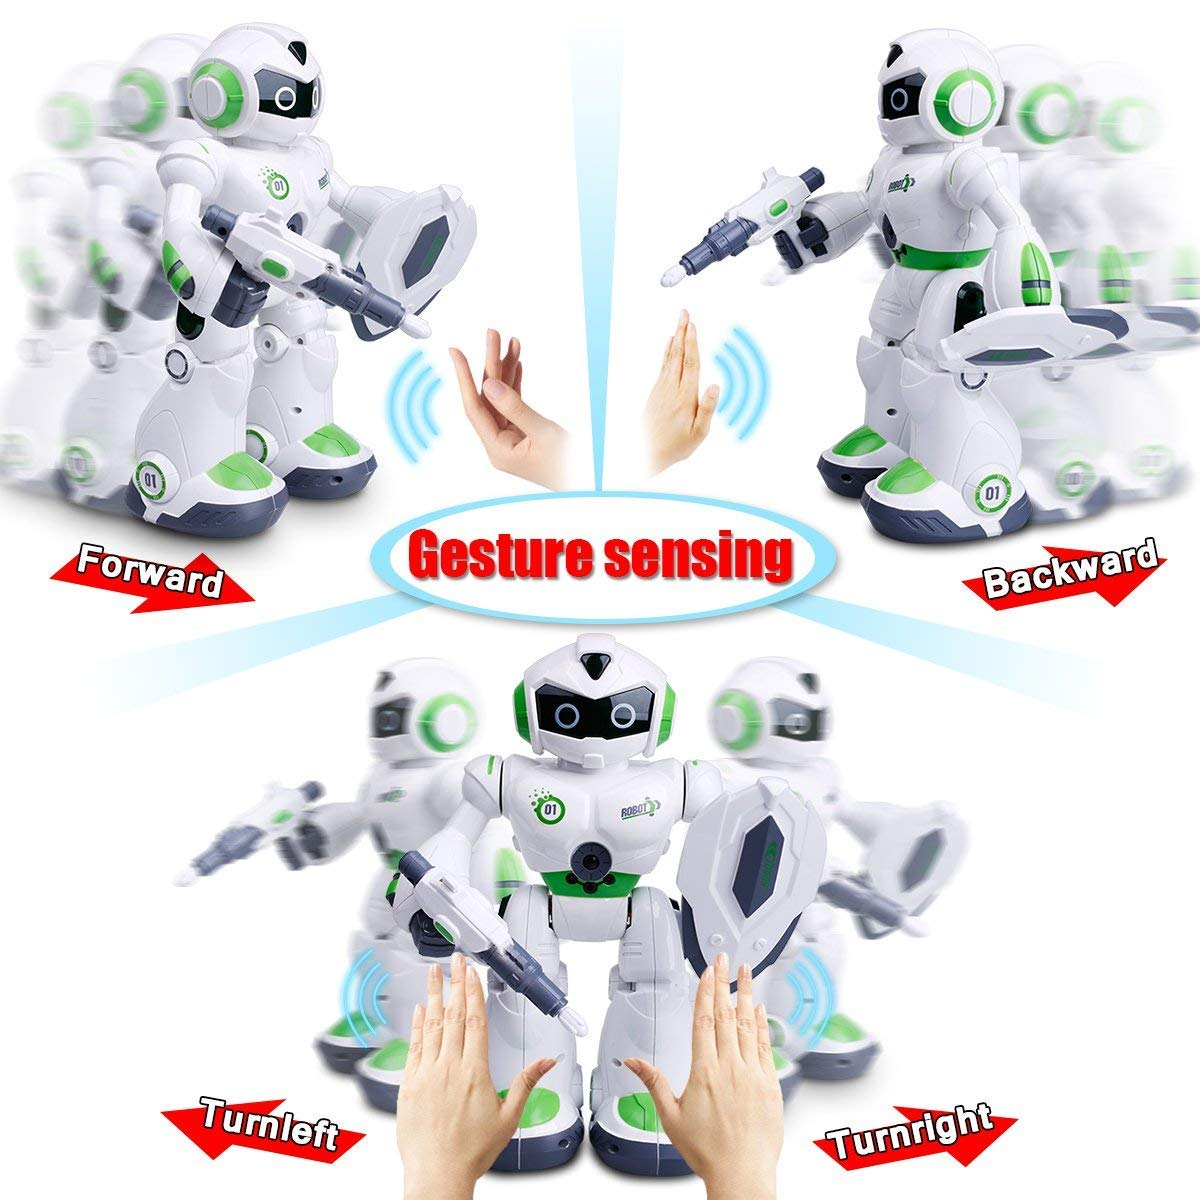 Remote Control Robot,Robot Toys,Smart Robotics for Kids with Gesture Sense, Interactive Walking Singing Dancing Speaking,with LED Light, Shoots Missiles, Talking, Walking, Singing, Educational Toys by Locke Teddy (Image #4)